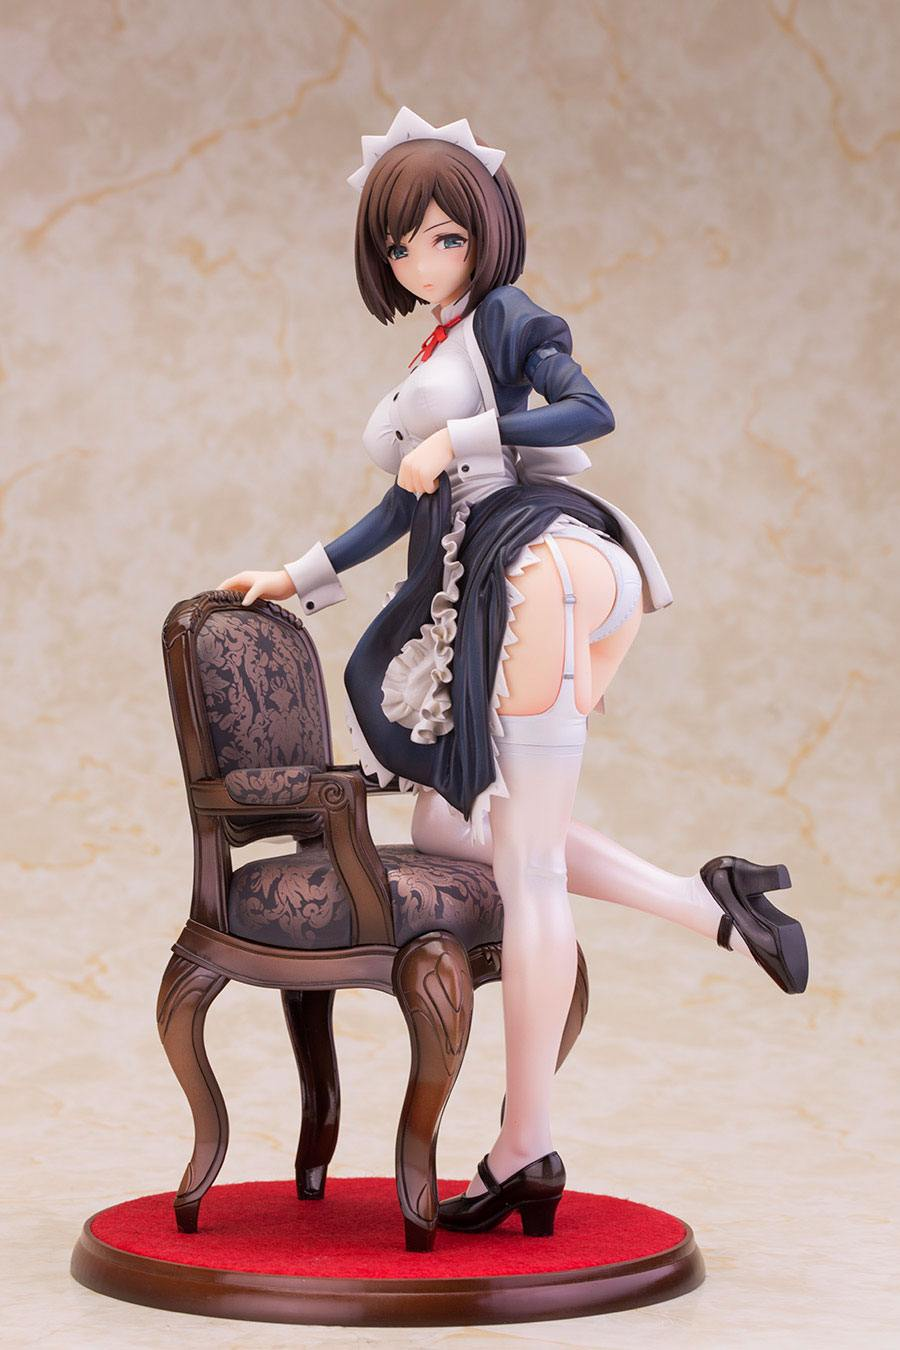 Original Character PVC Statue 1/6 Chitose Itou illustration by 40hara STD Ver. 27 cm